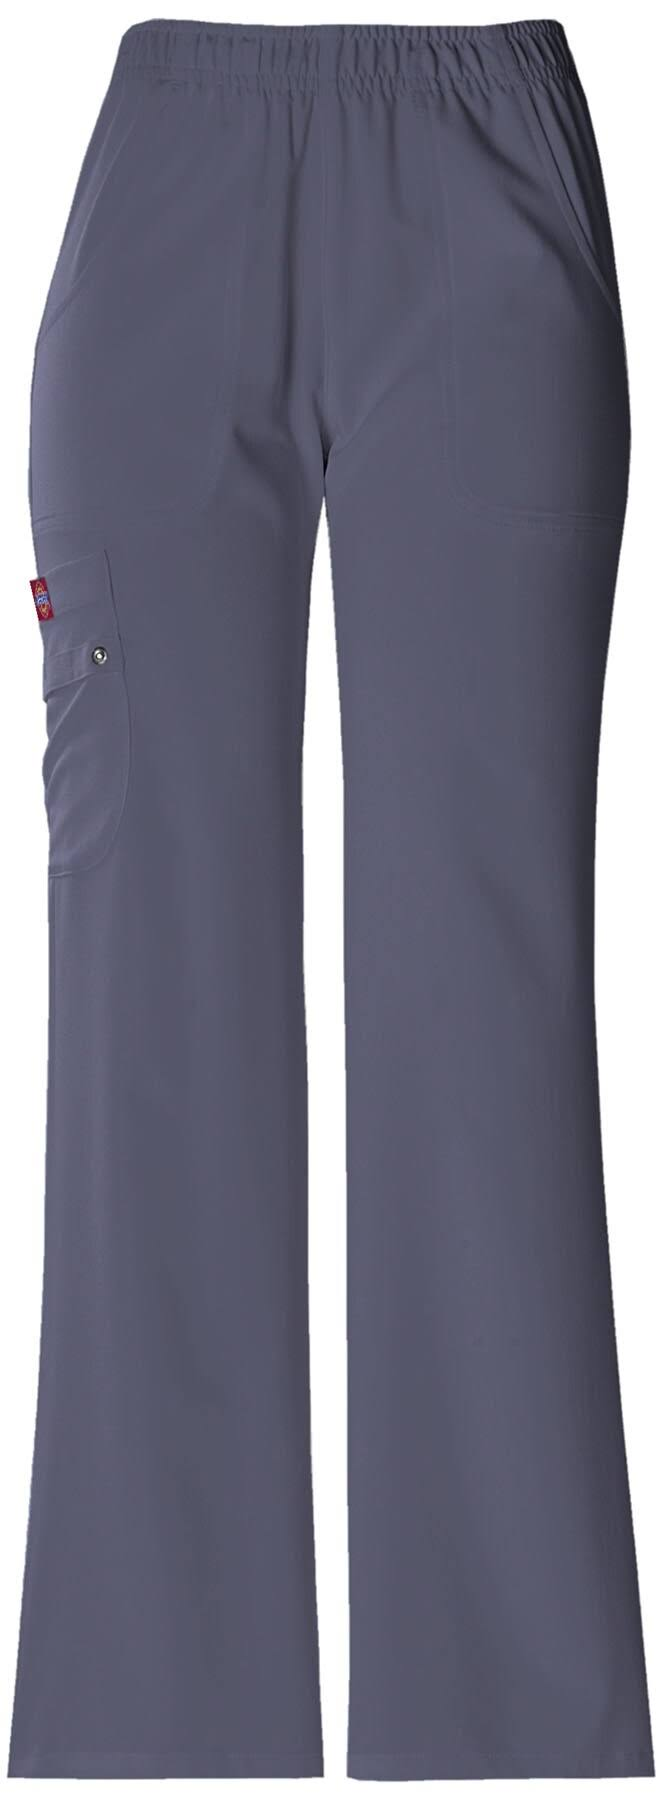 Dickies Women's Xtreme Stretch-Fit Elastic Waist Pant Scrub Bottoms - Light Pewter, X-Large